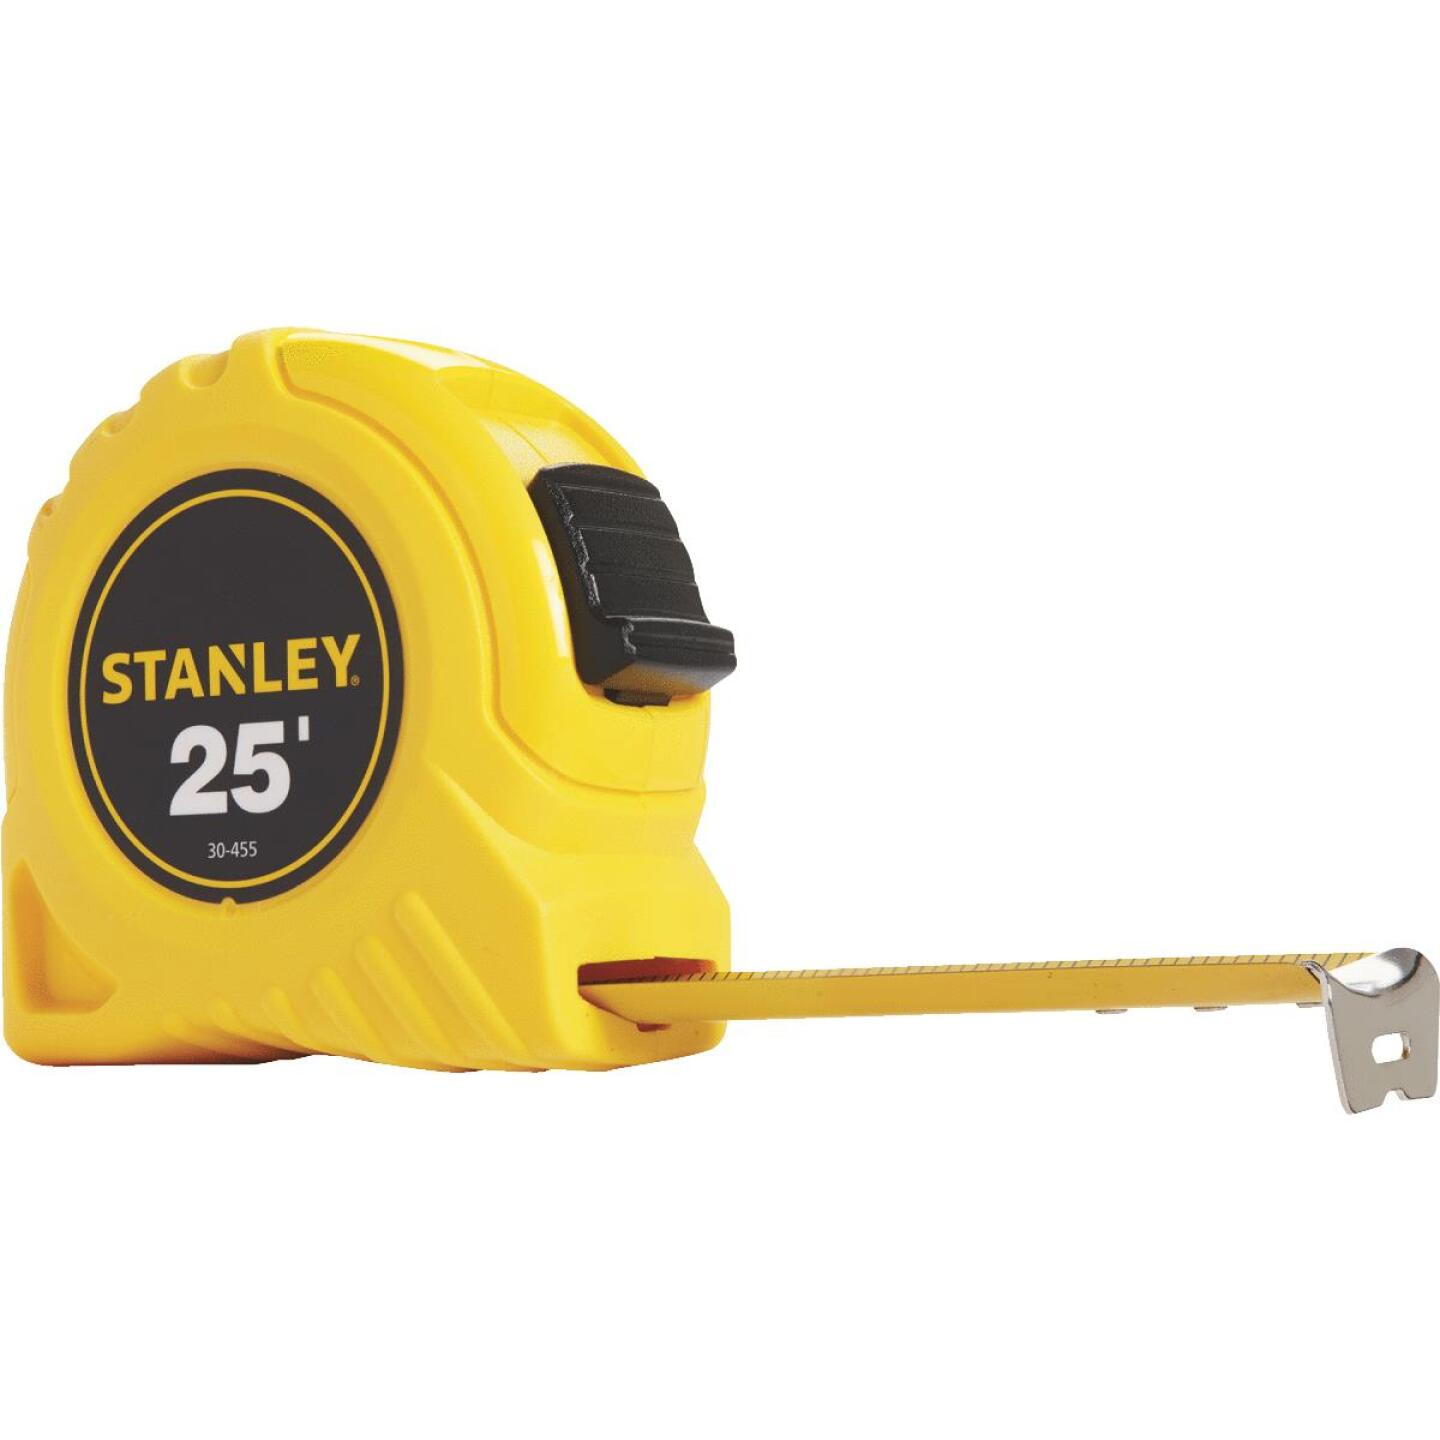 Stanley 25 Ft. Tape Measure Image 3